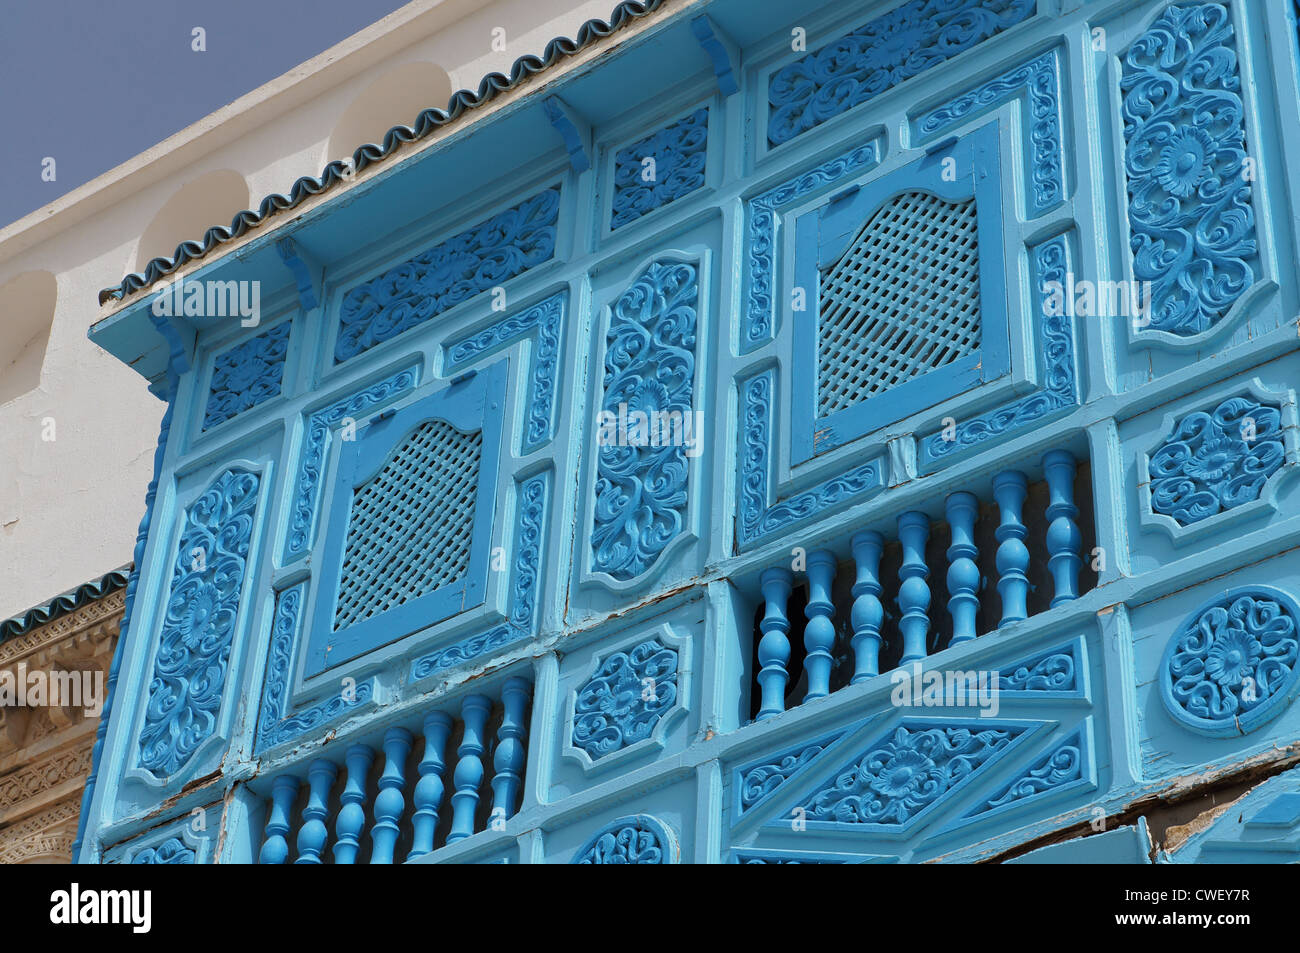 Blue bow window in the traditional tunisian architecture - Stock Image